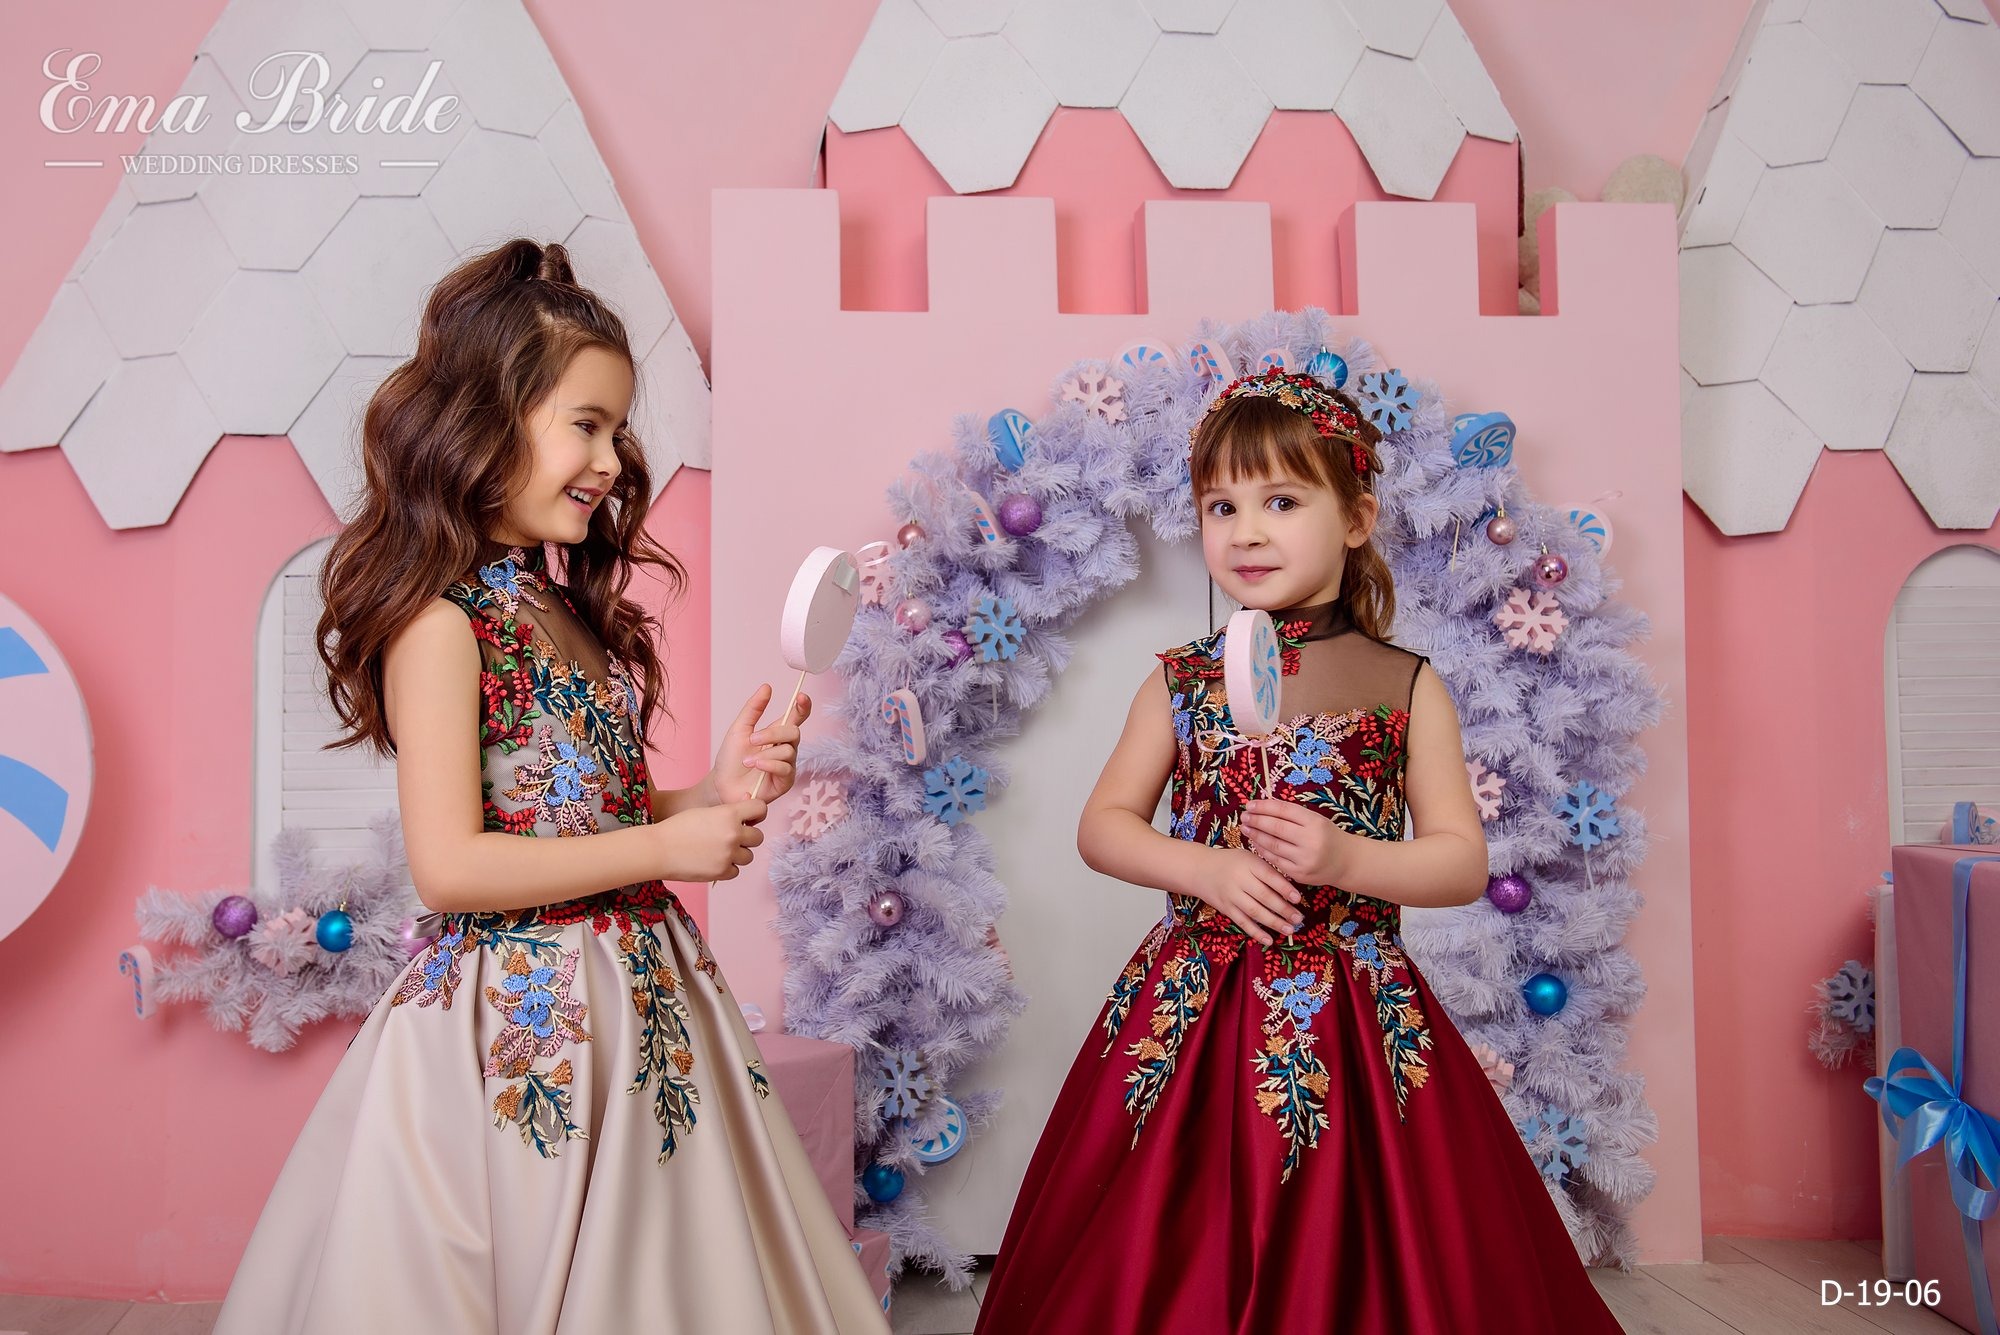 Children's dress by EmaBride D-19-06 2019-2